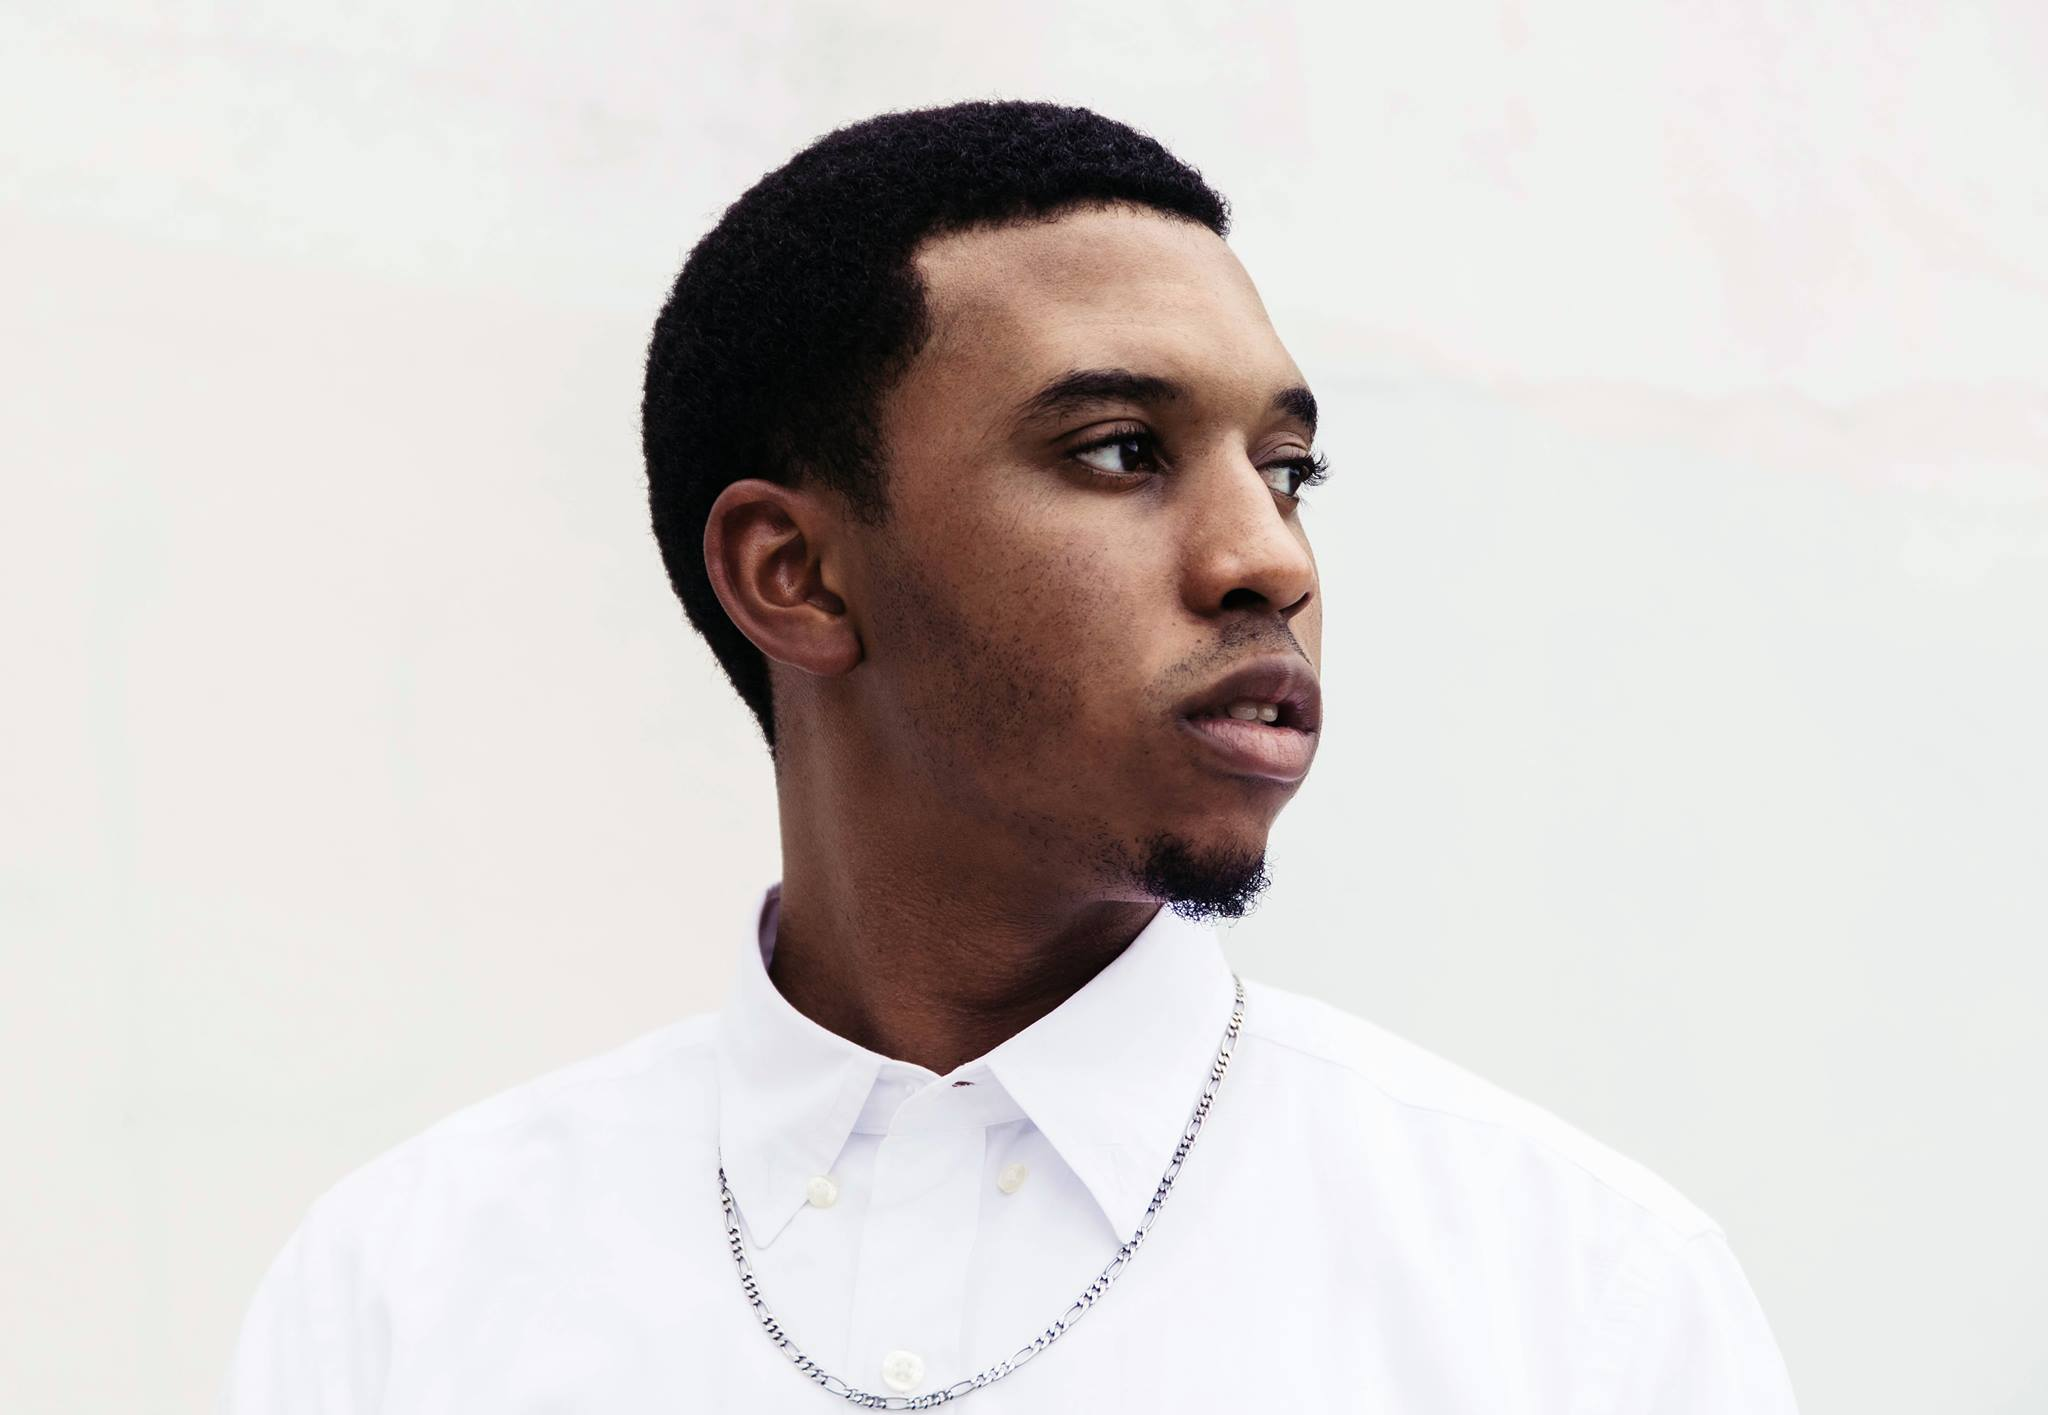 Not only does Ogden Payne have his own column in  Forbes (both Chance The Rapper and Joey Badass gave it their stamps of approval on Twitter), he's also dropping a new album this year. You better believe it's gonna be great.